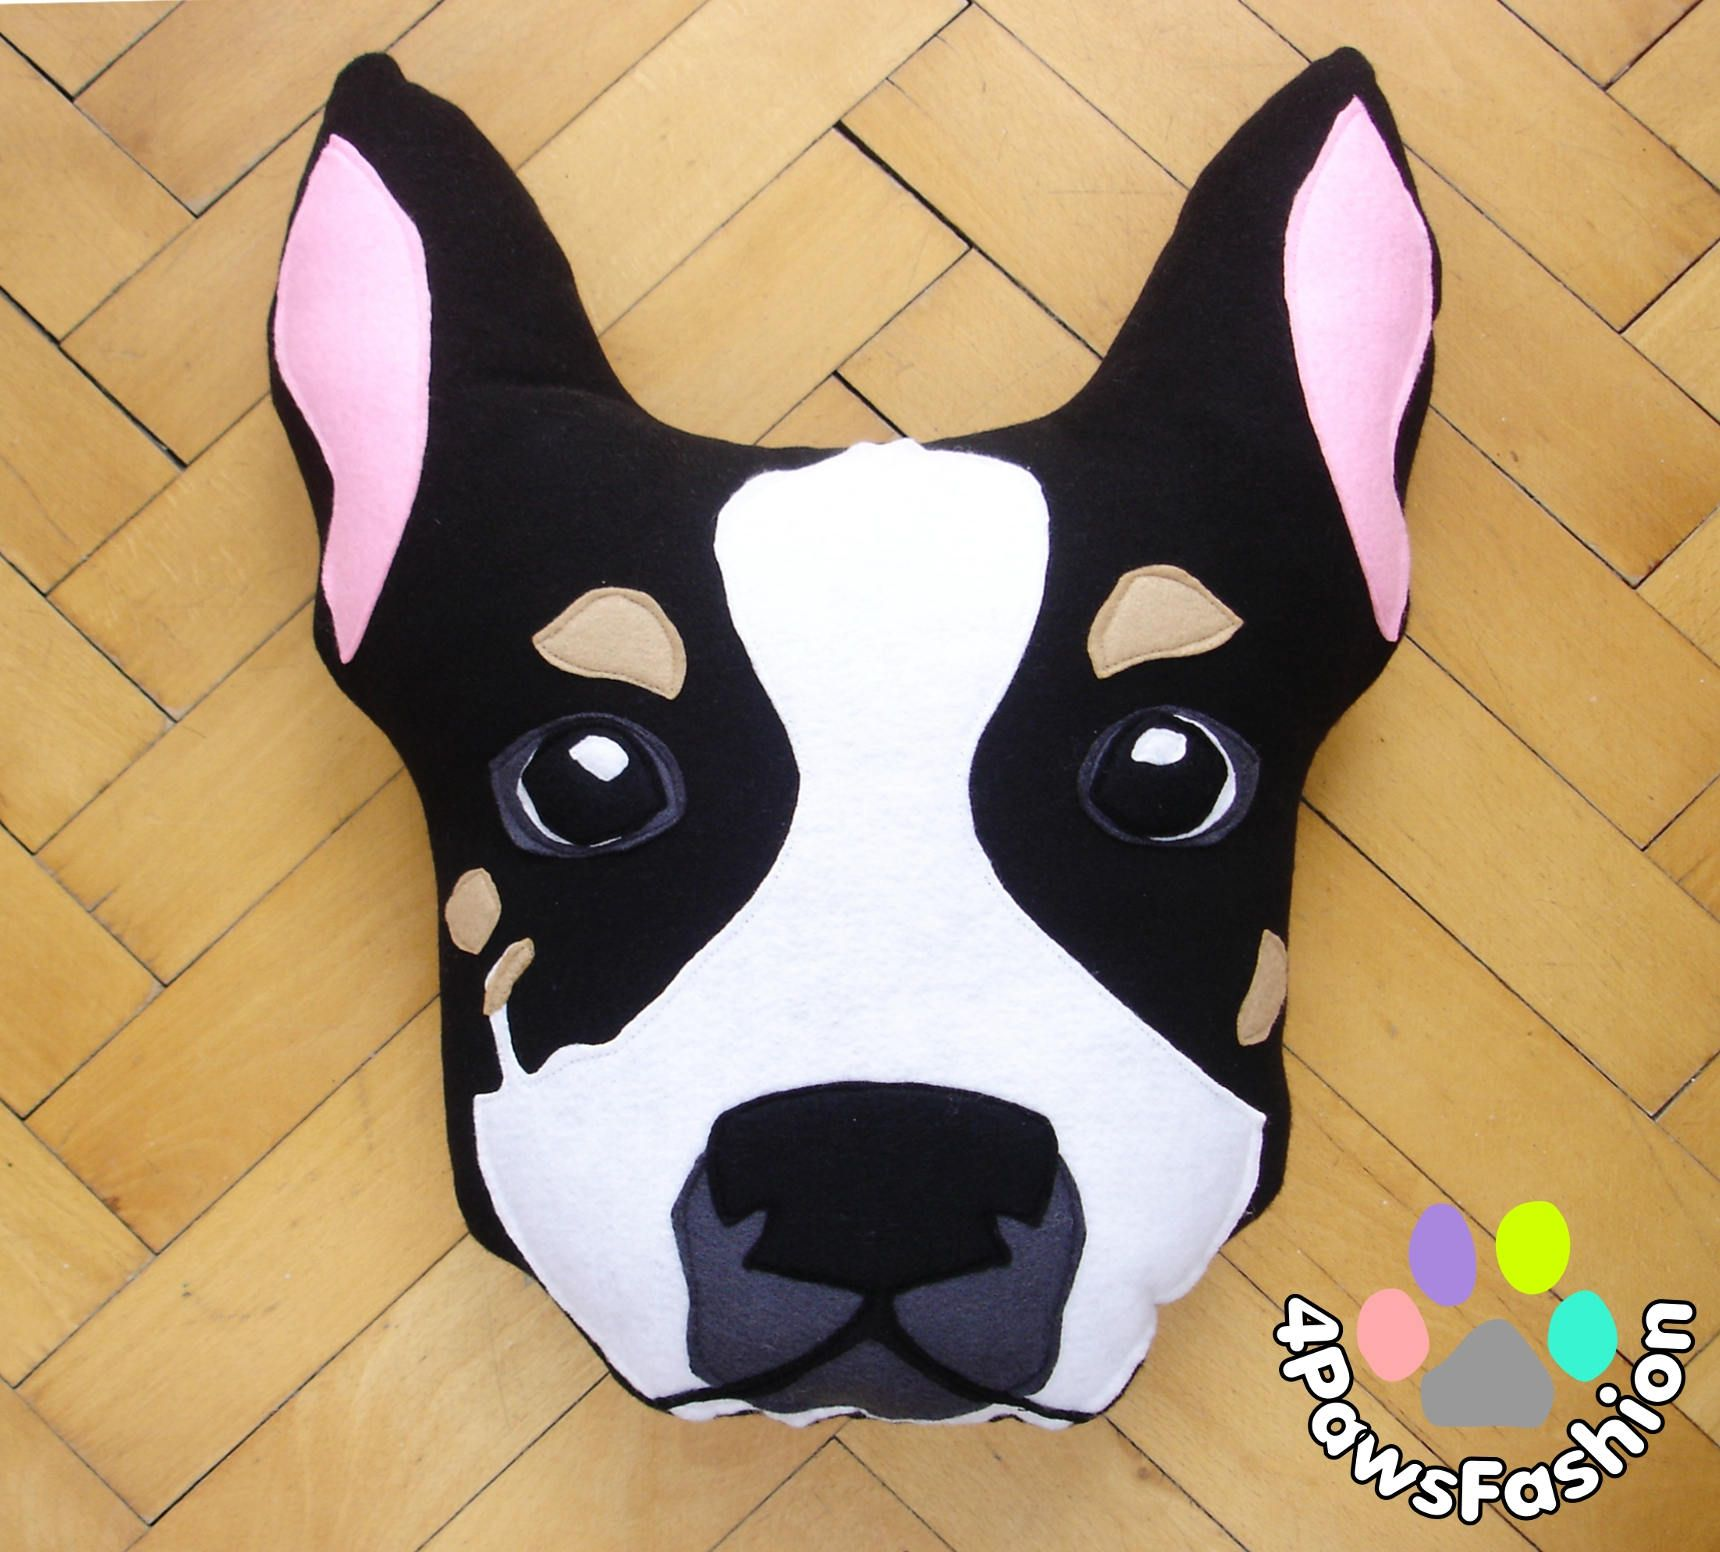 Trixie Chihuahua Stuffed Plush Toy Black And White Dog Pattern Throw